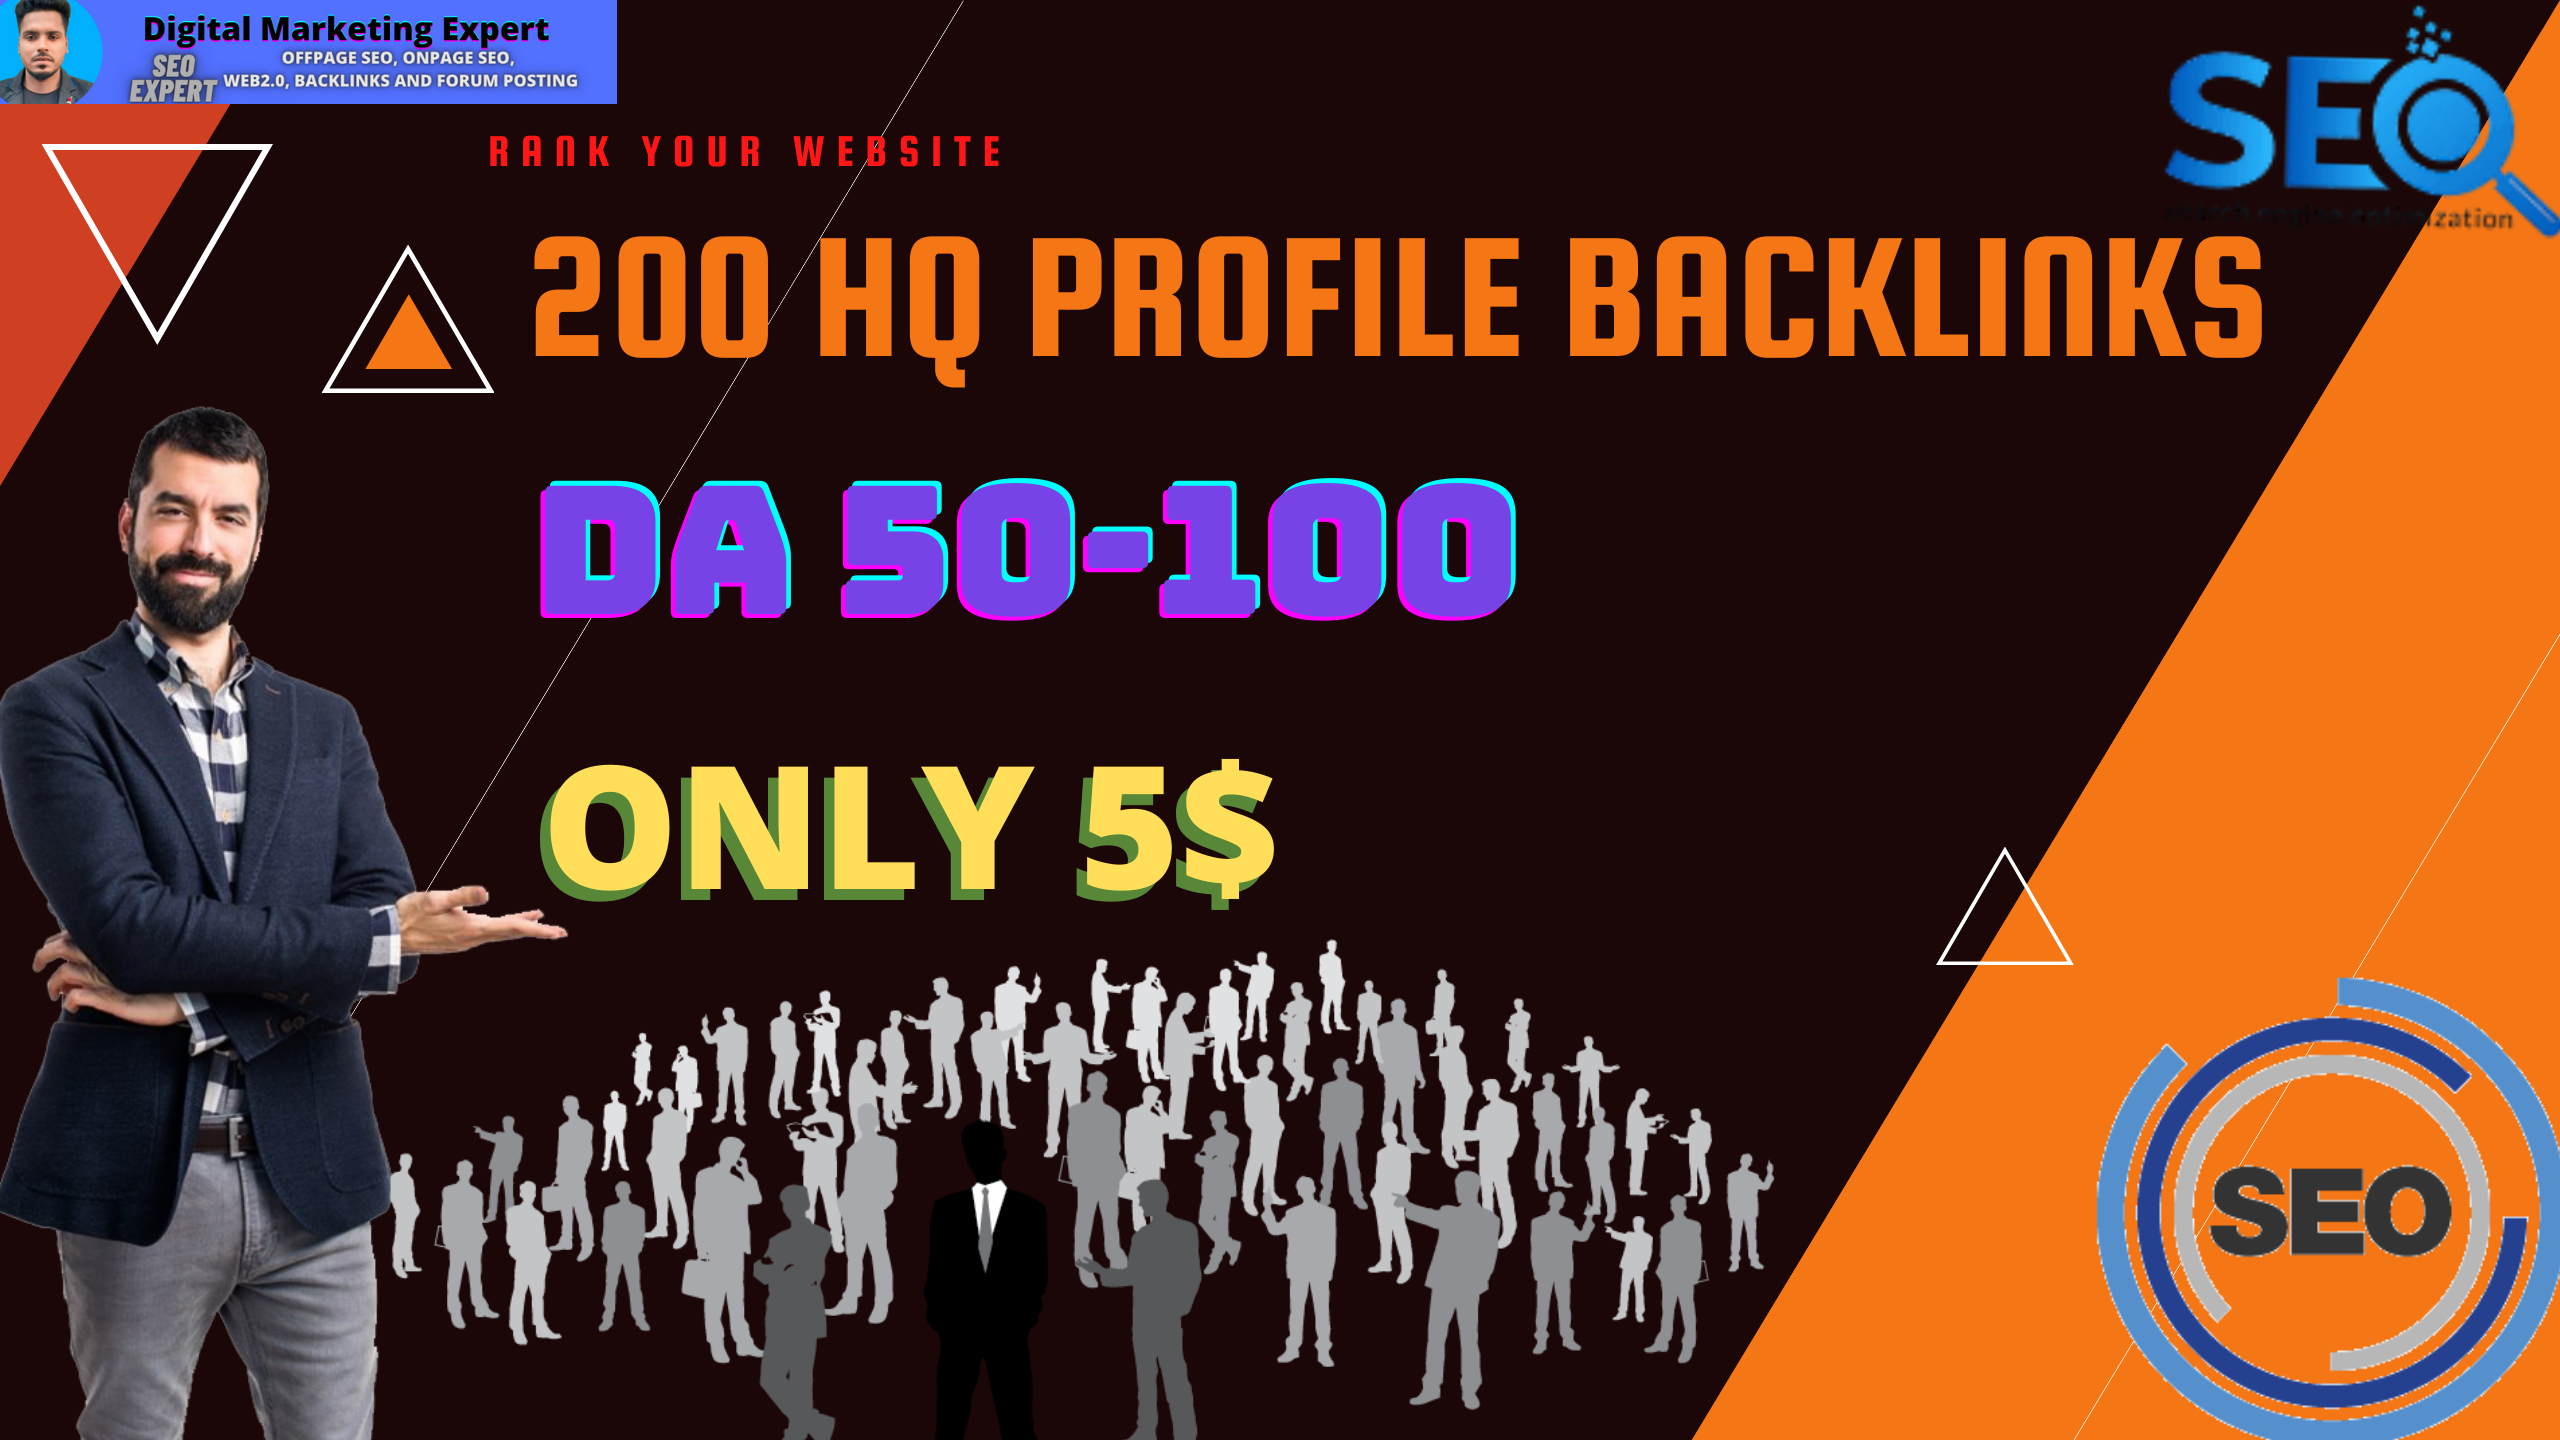 I will Provide 200 High DA Profile Backlinks Manually for SEO Ranking Your Business/Website